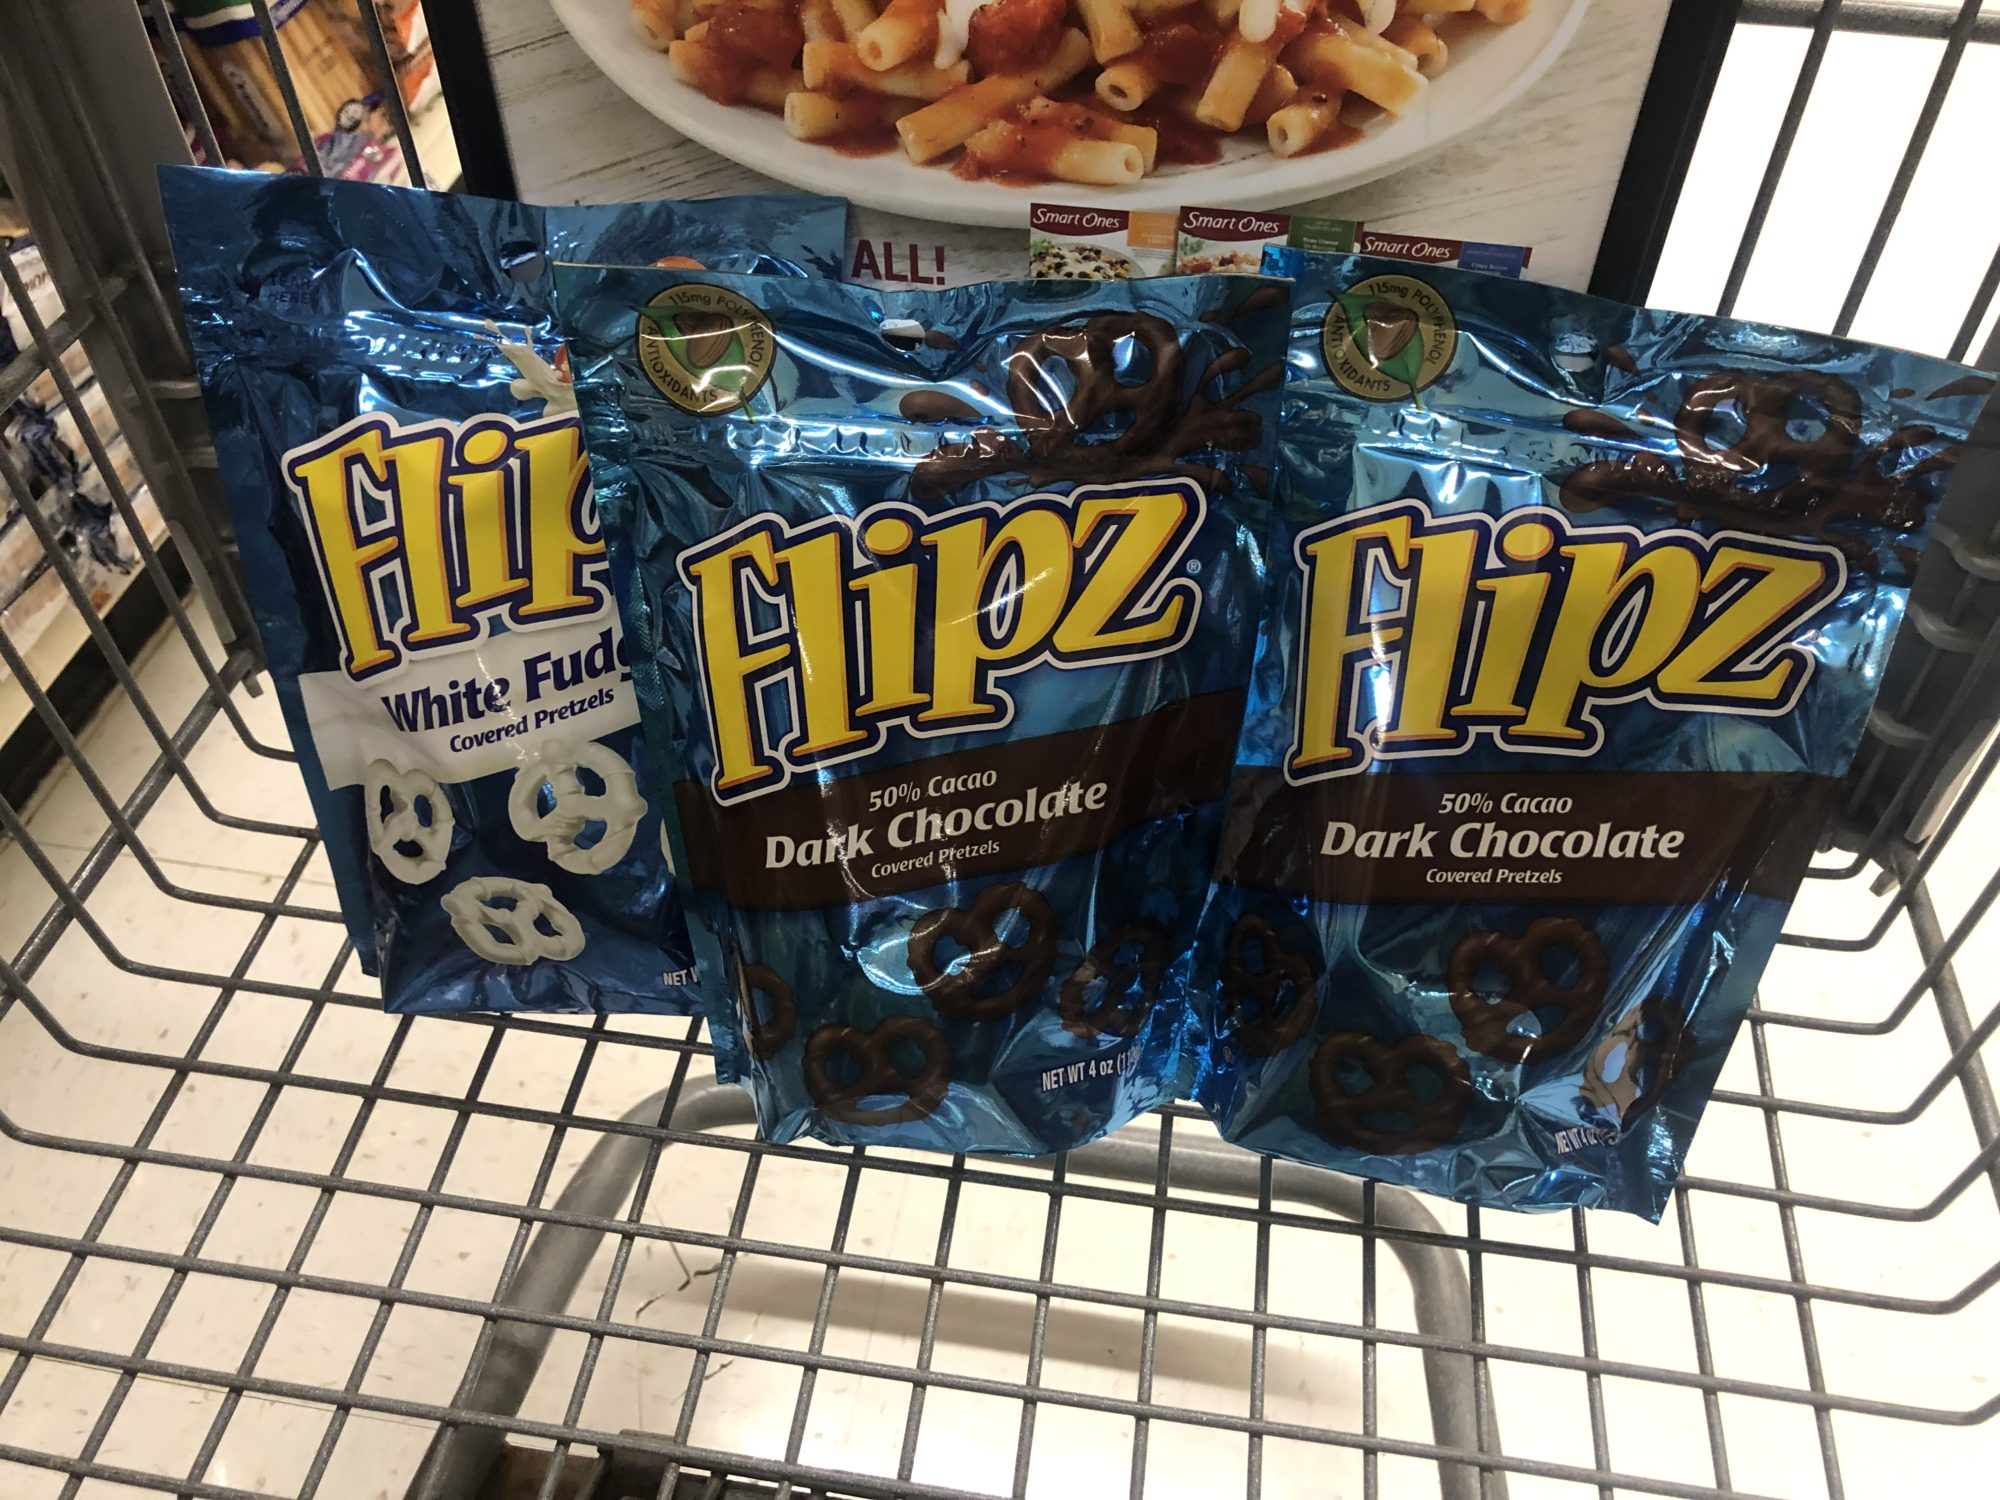 ShopRite: Flipz Chocolate Covered Pretzels ONLY $0.17 Each Starting 8/18!